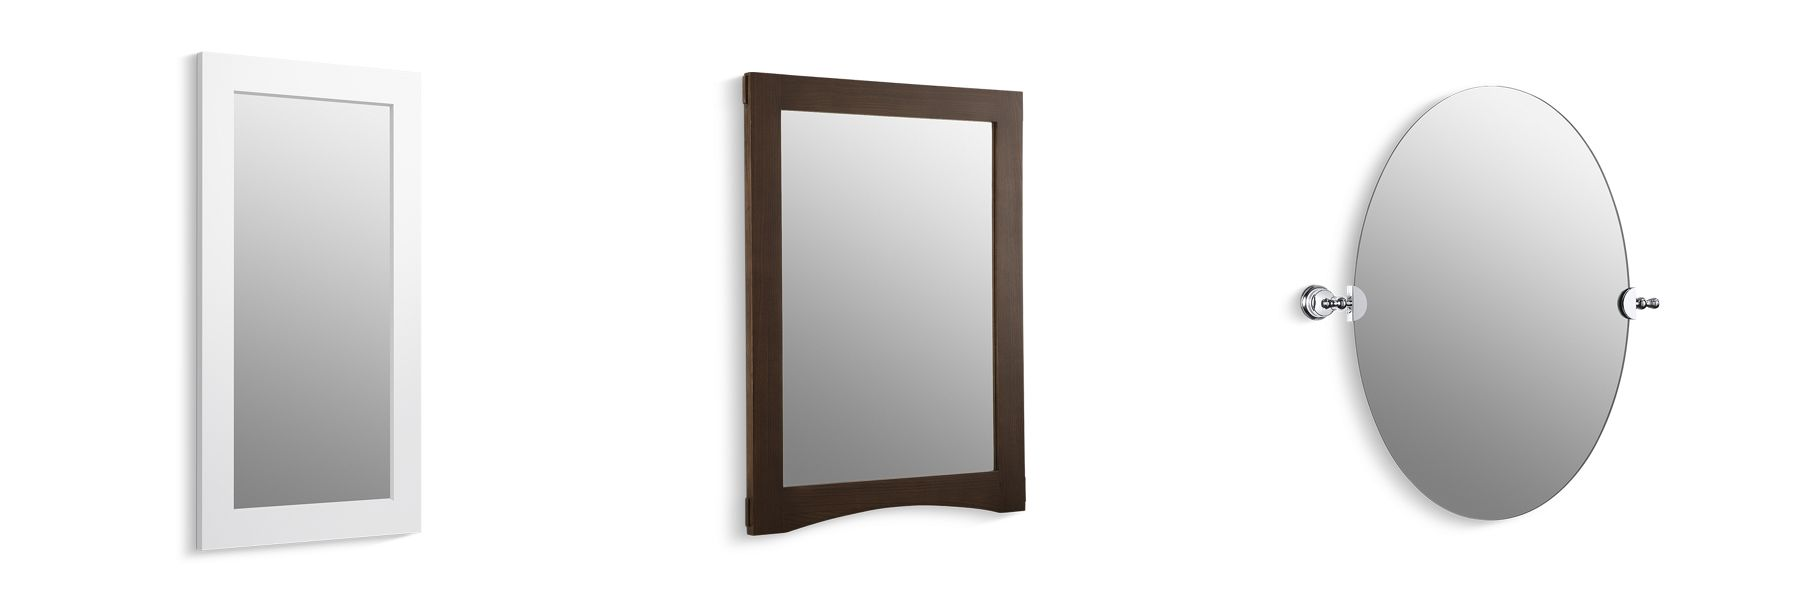 Bathroom Mirror Cabinets New Zealand medicine cabinets & mirrors guide | bathroom | kohler